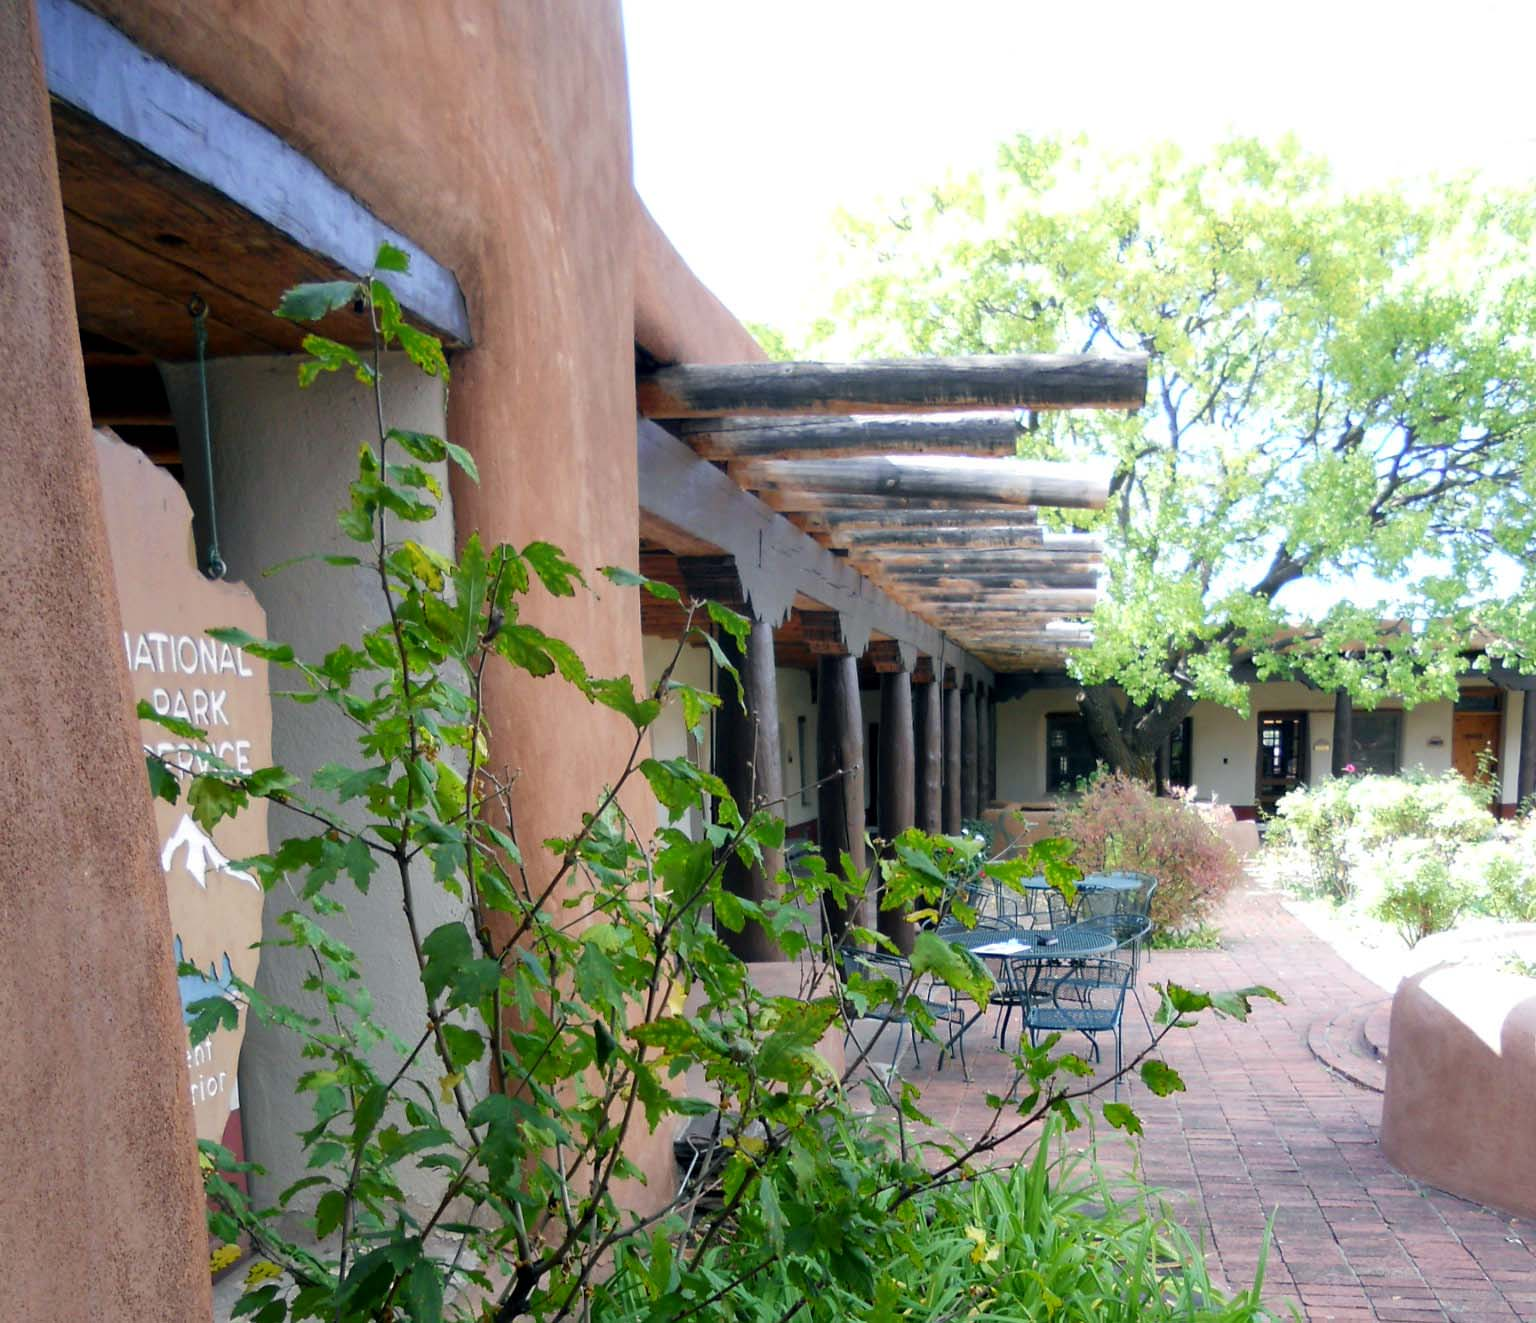 the National Park Service still has offices at the Old Santa Fe Trail Building